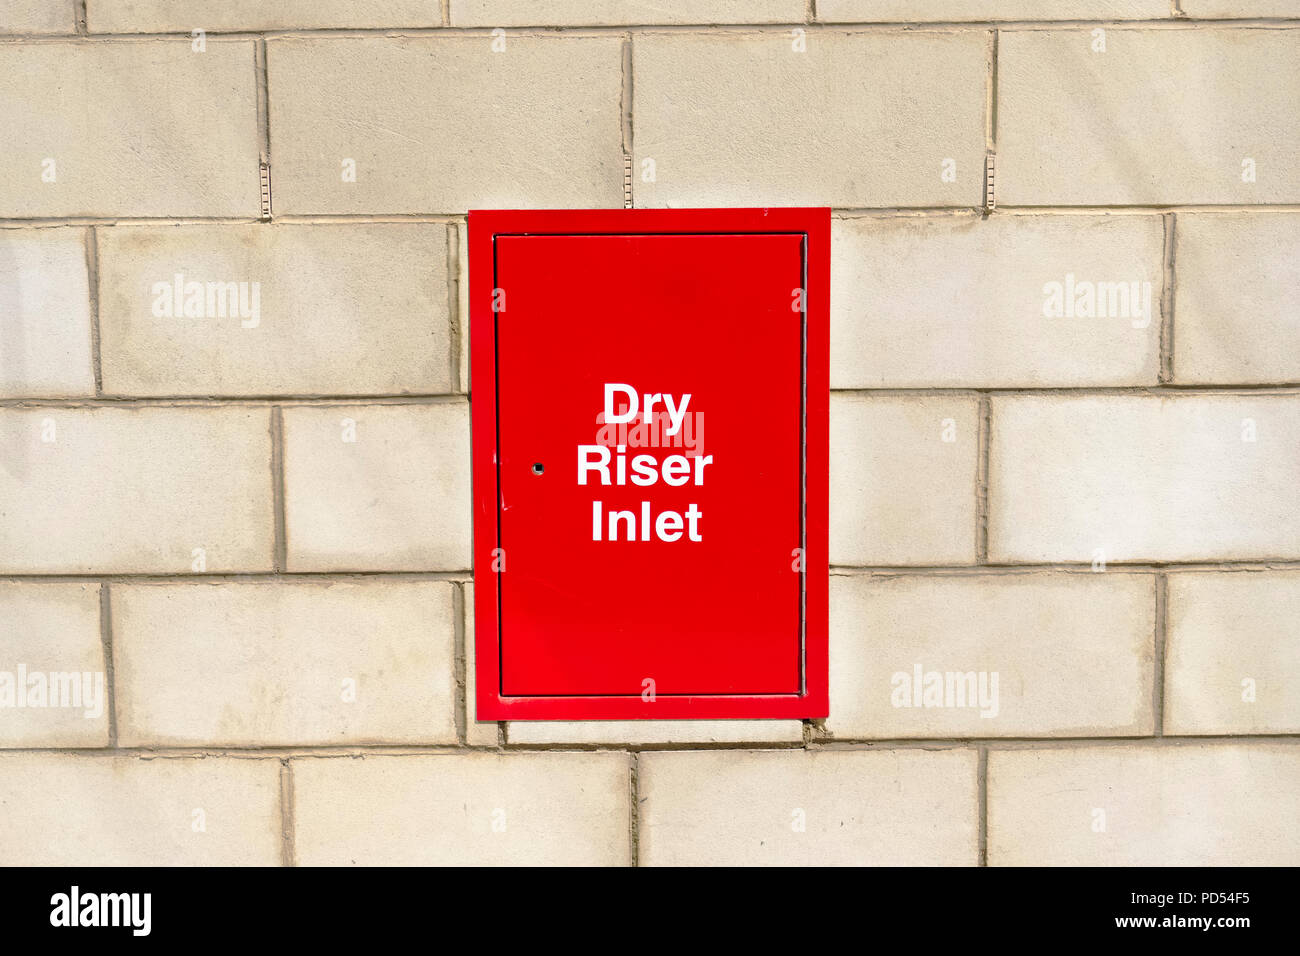 Dry riser inlet box red on brick wall for emergency fire services water connection for hose brigade engine at shopping mall retail park Stock Photo